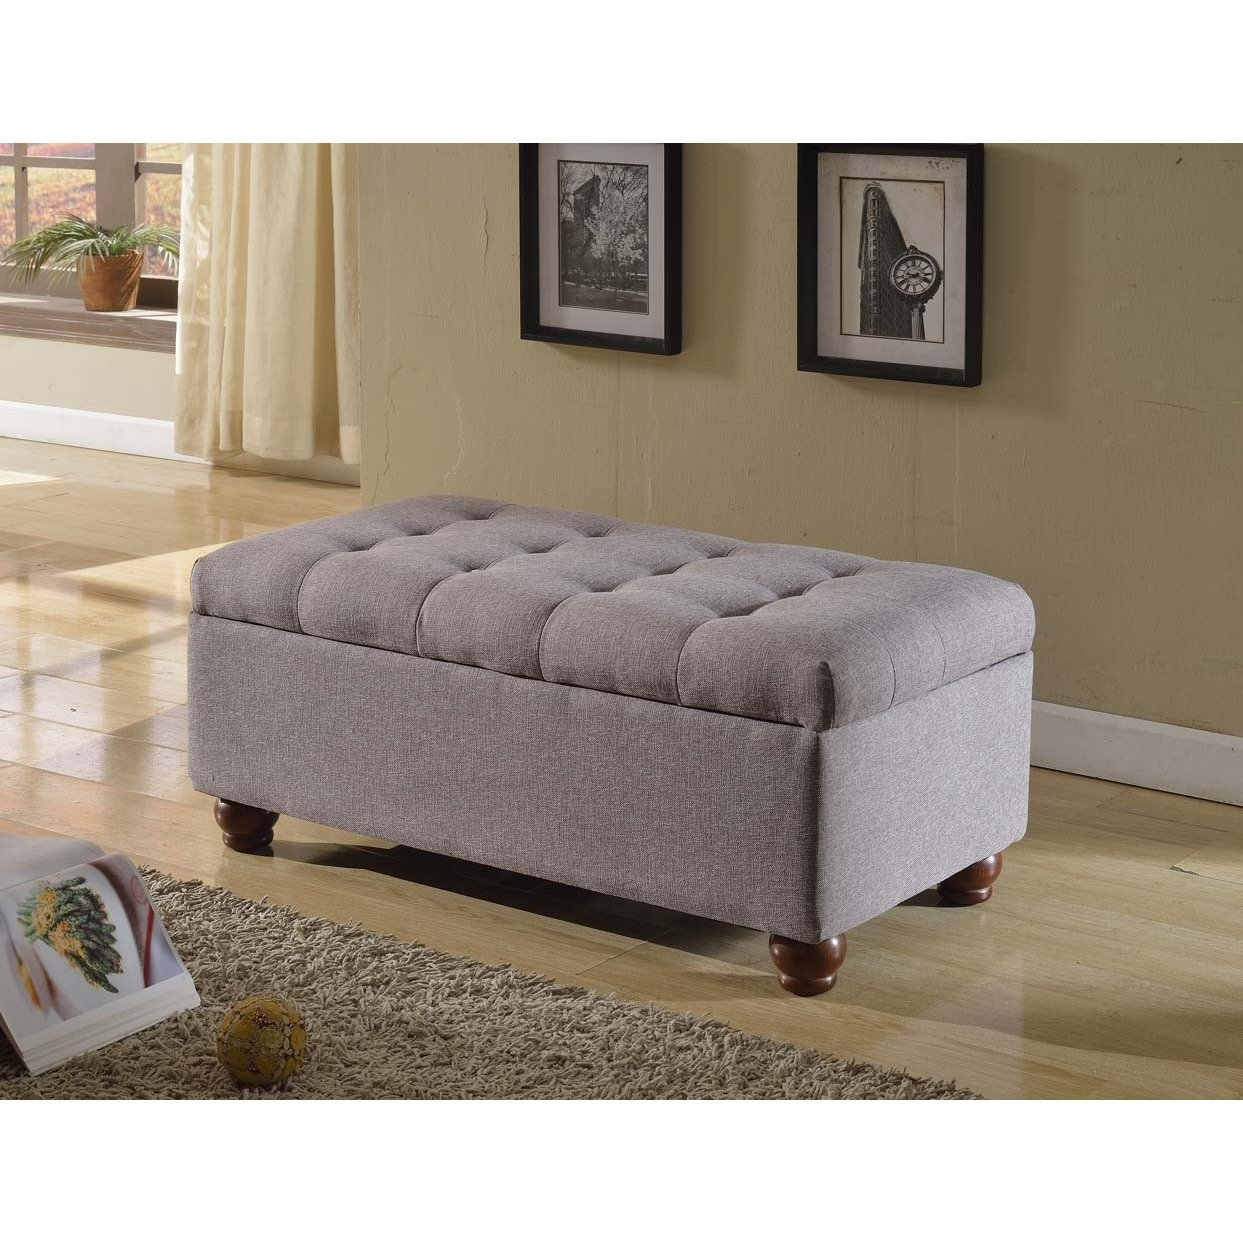 Amazoncom Tufted Linen and Upholstered Grey Storage Ottoman